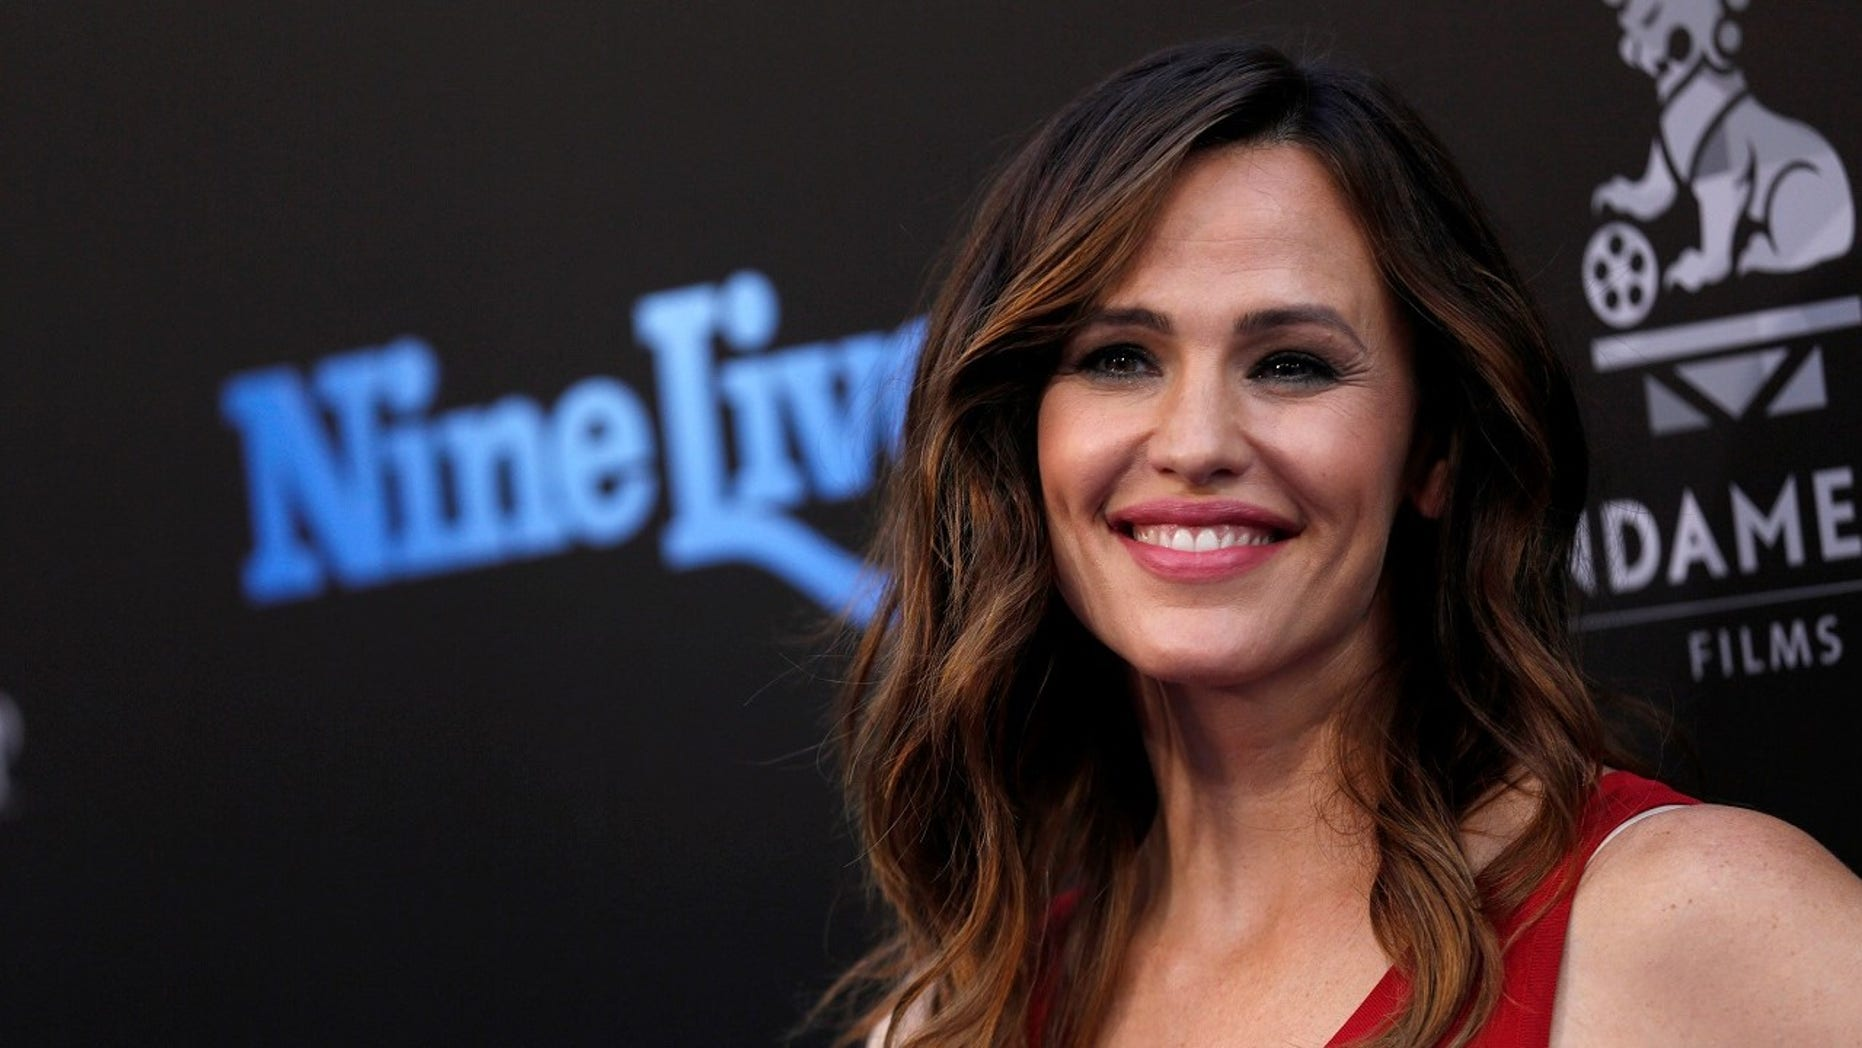 Jennifer Garner was photographed selling Girl Scout cookies outside a grocery store on Sunday.